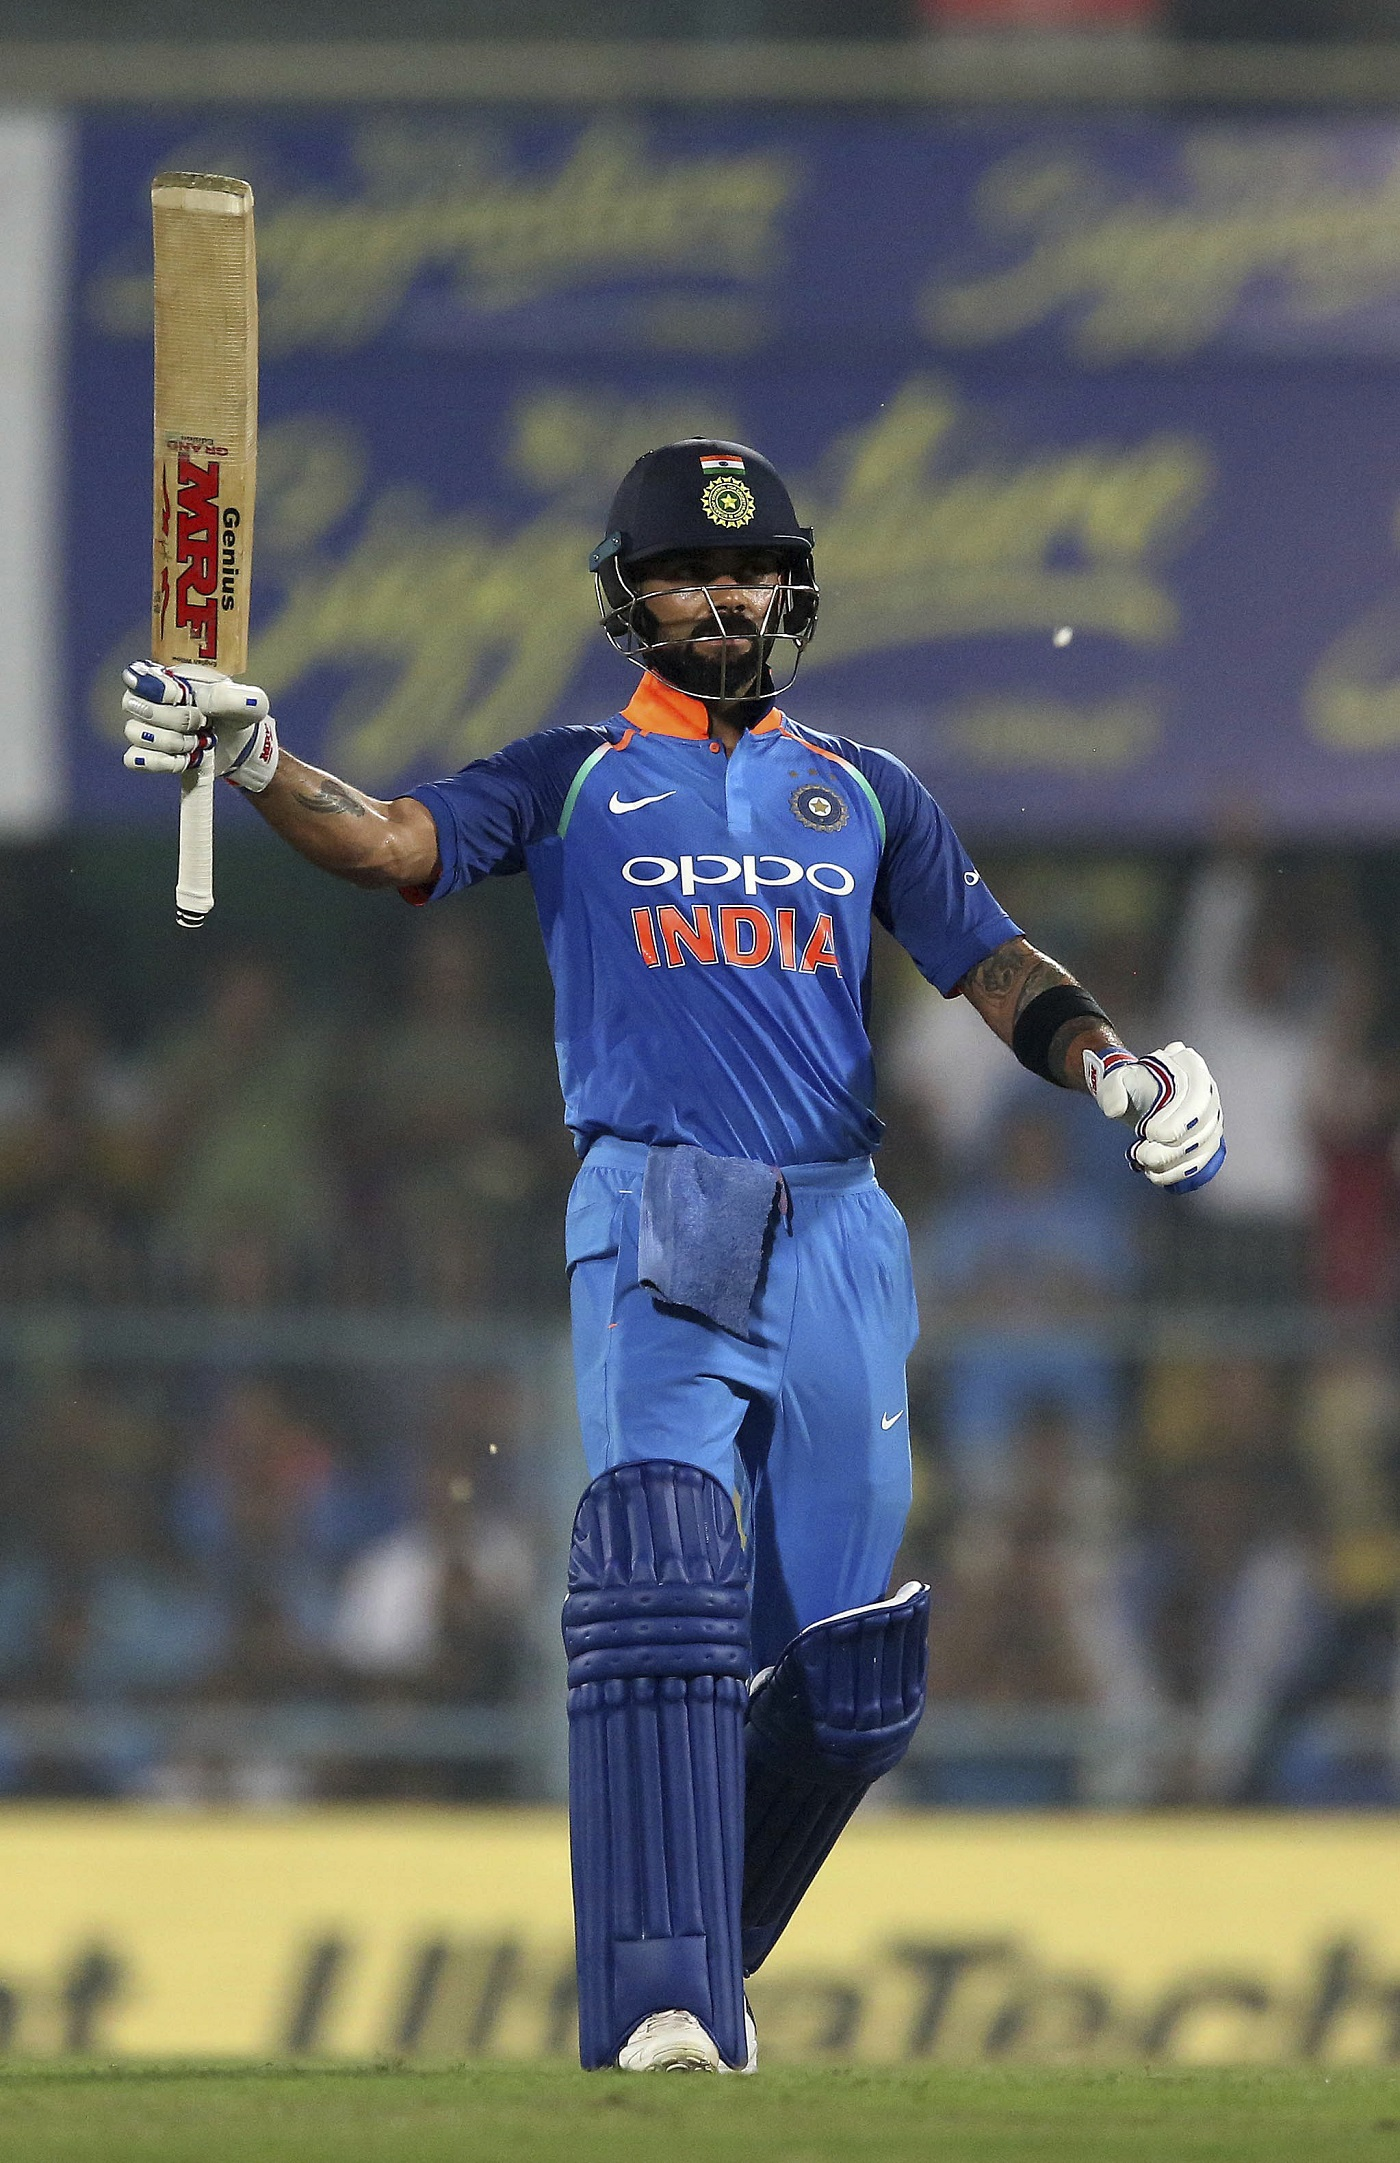 Happy That I Have Been Able To Play For So Long And Hopefully Many More Years To Come: Virat Kohli